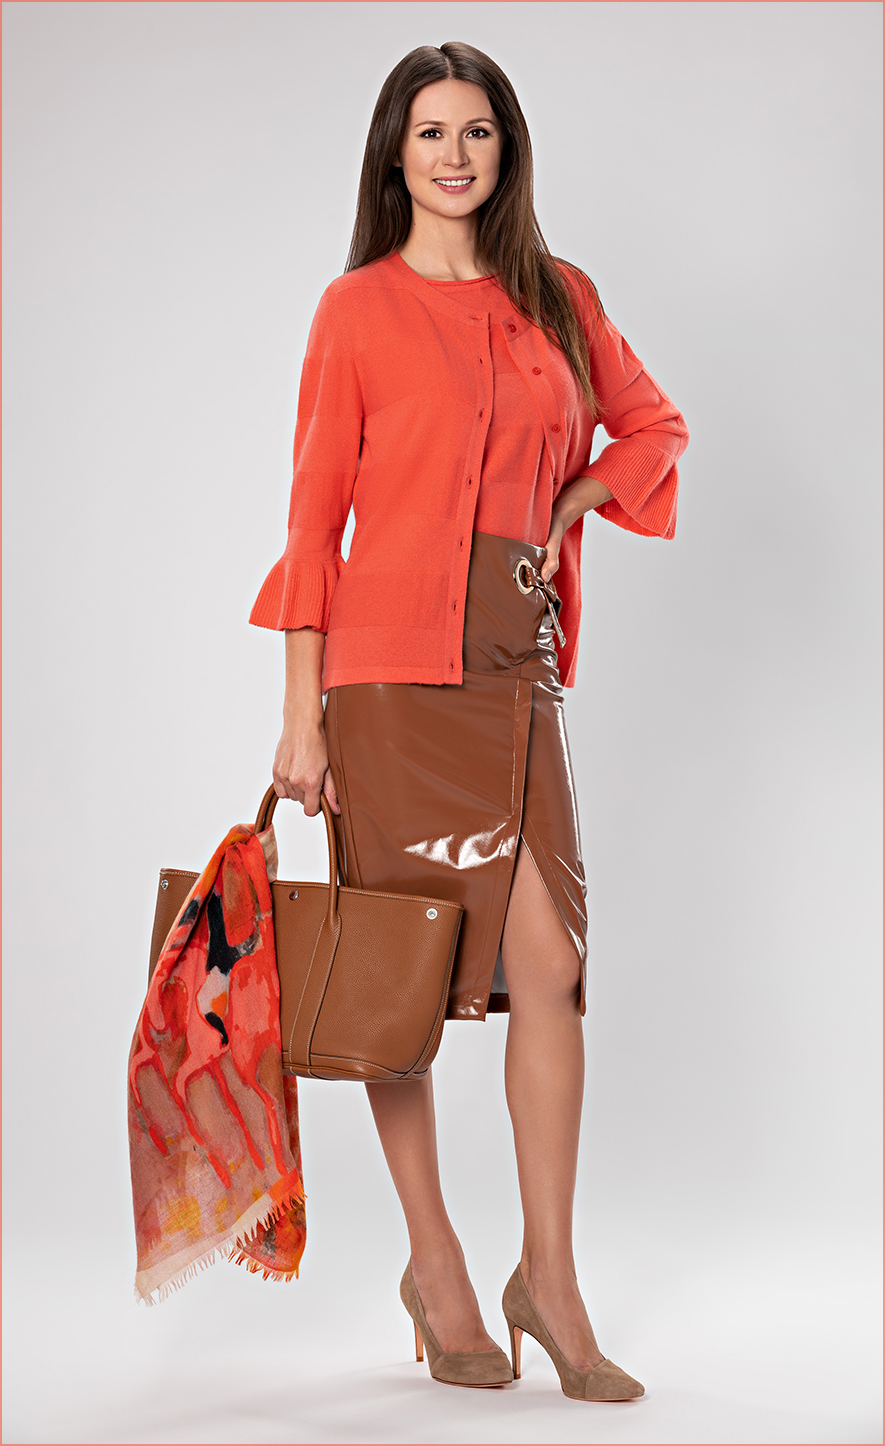 fashion photography for women for retail and wholesale catalogs